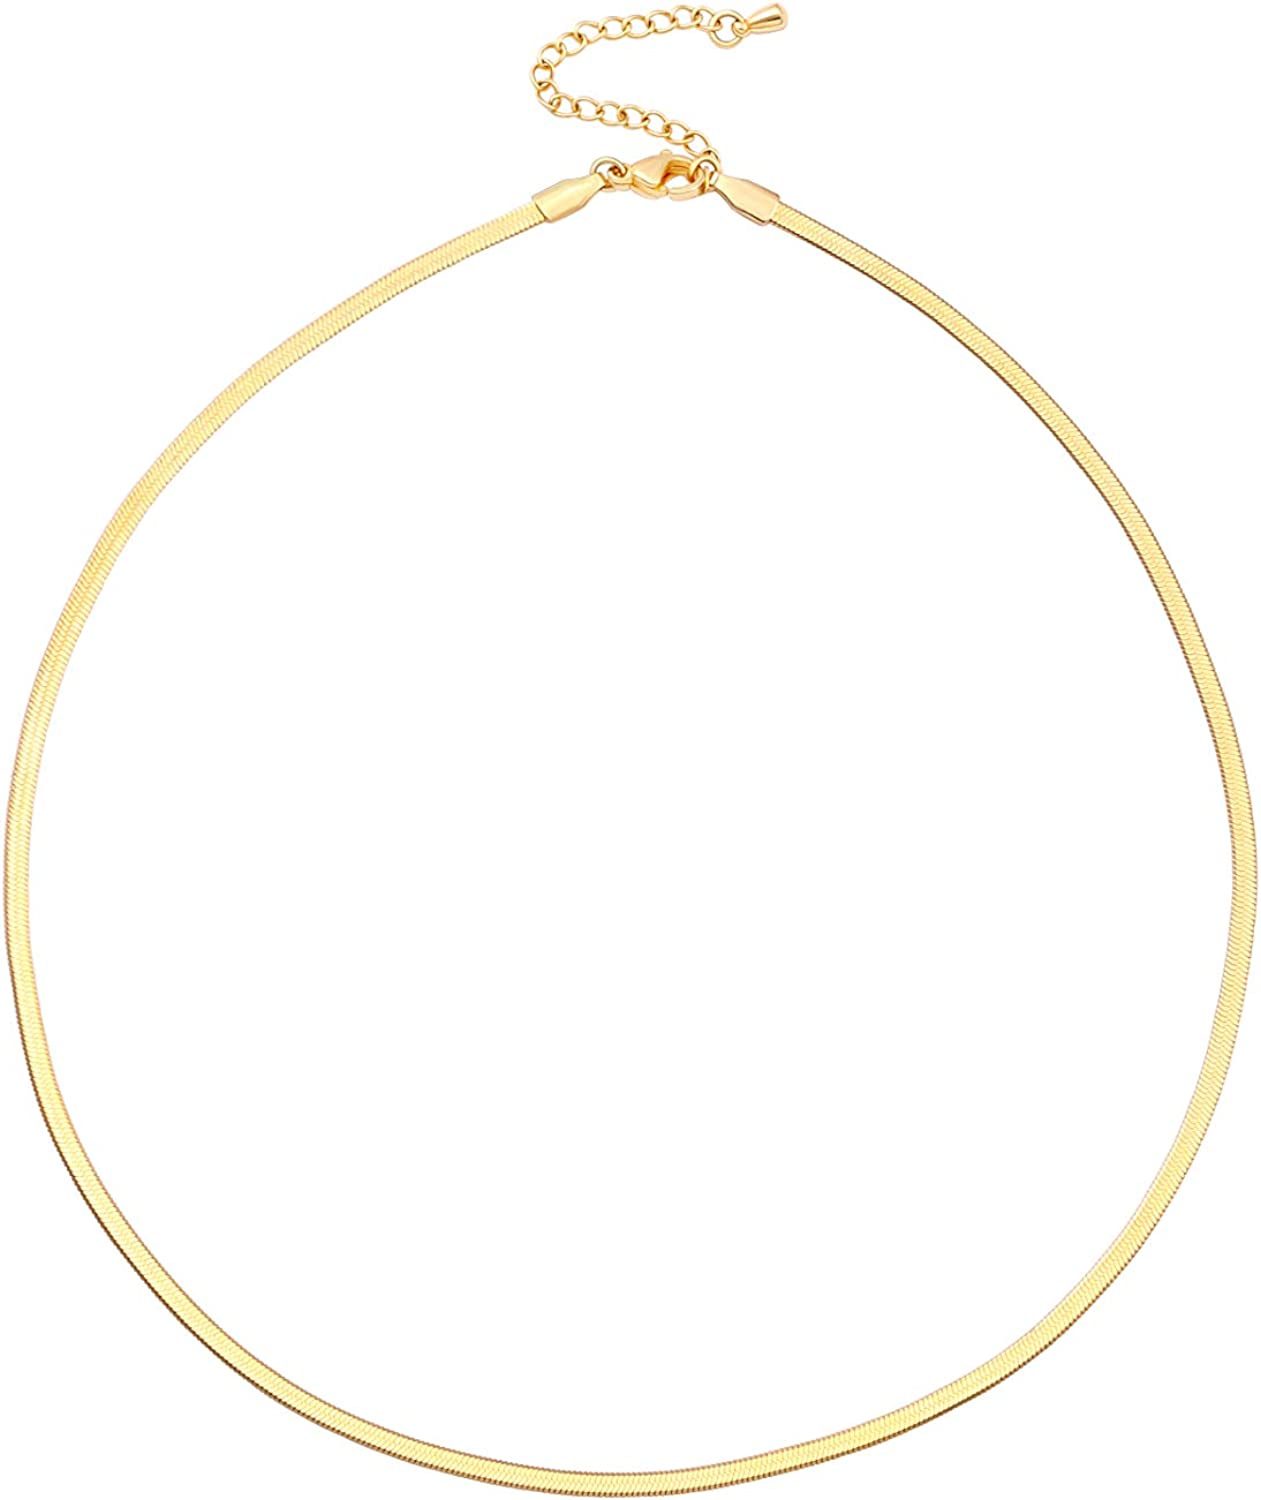 CANEVINKA 18K Gold Plated Chain Choker Necklaces for Women Dainty Brushed Coin Crescent Moon Pearl Pendant Necklace Minimalist Snake Chain Choker Necklace Paperclip Chain Jewelry